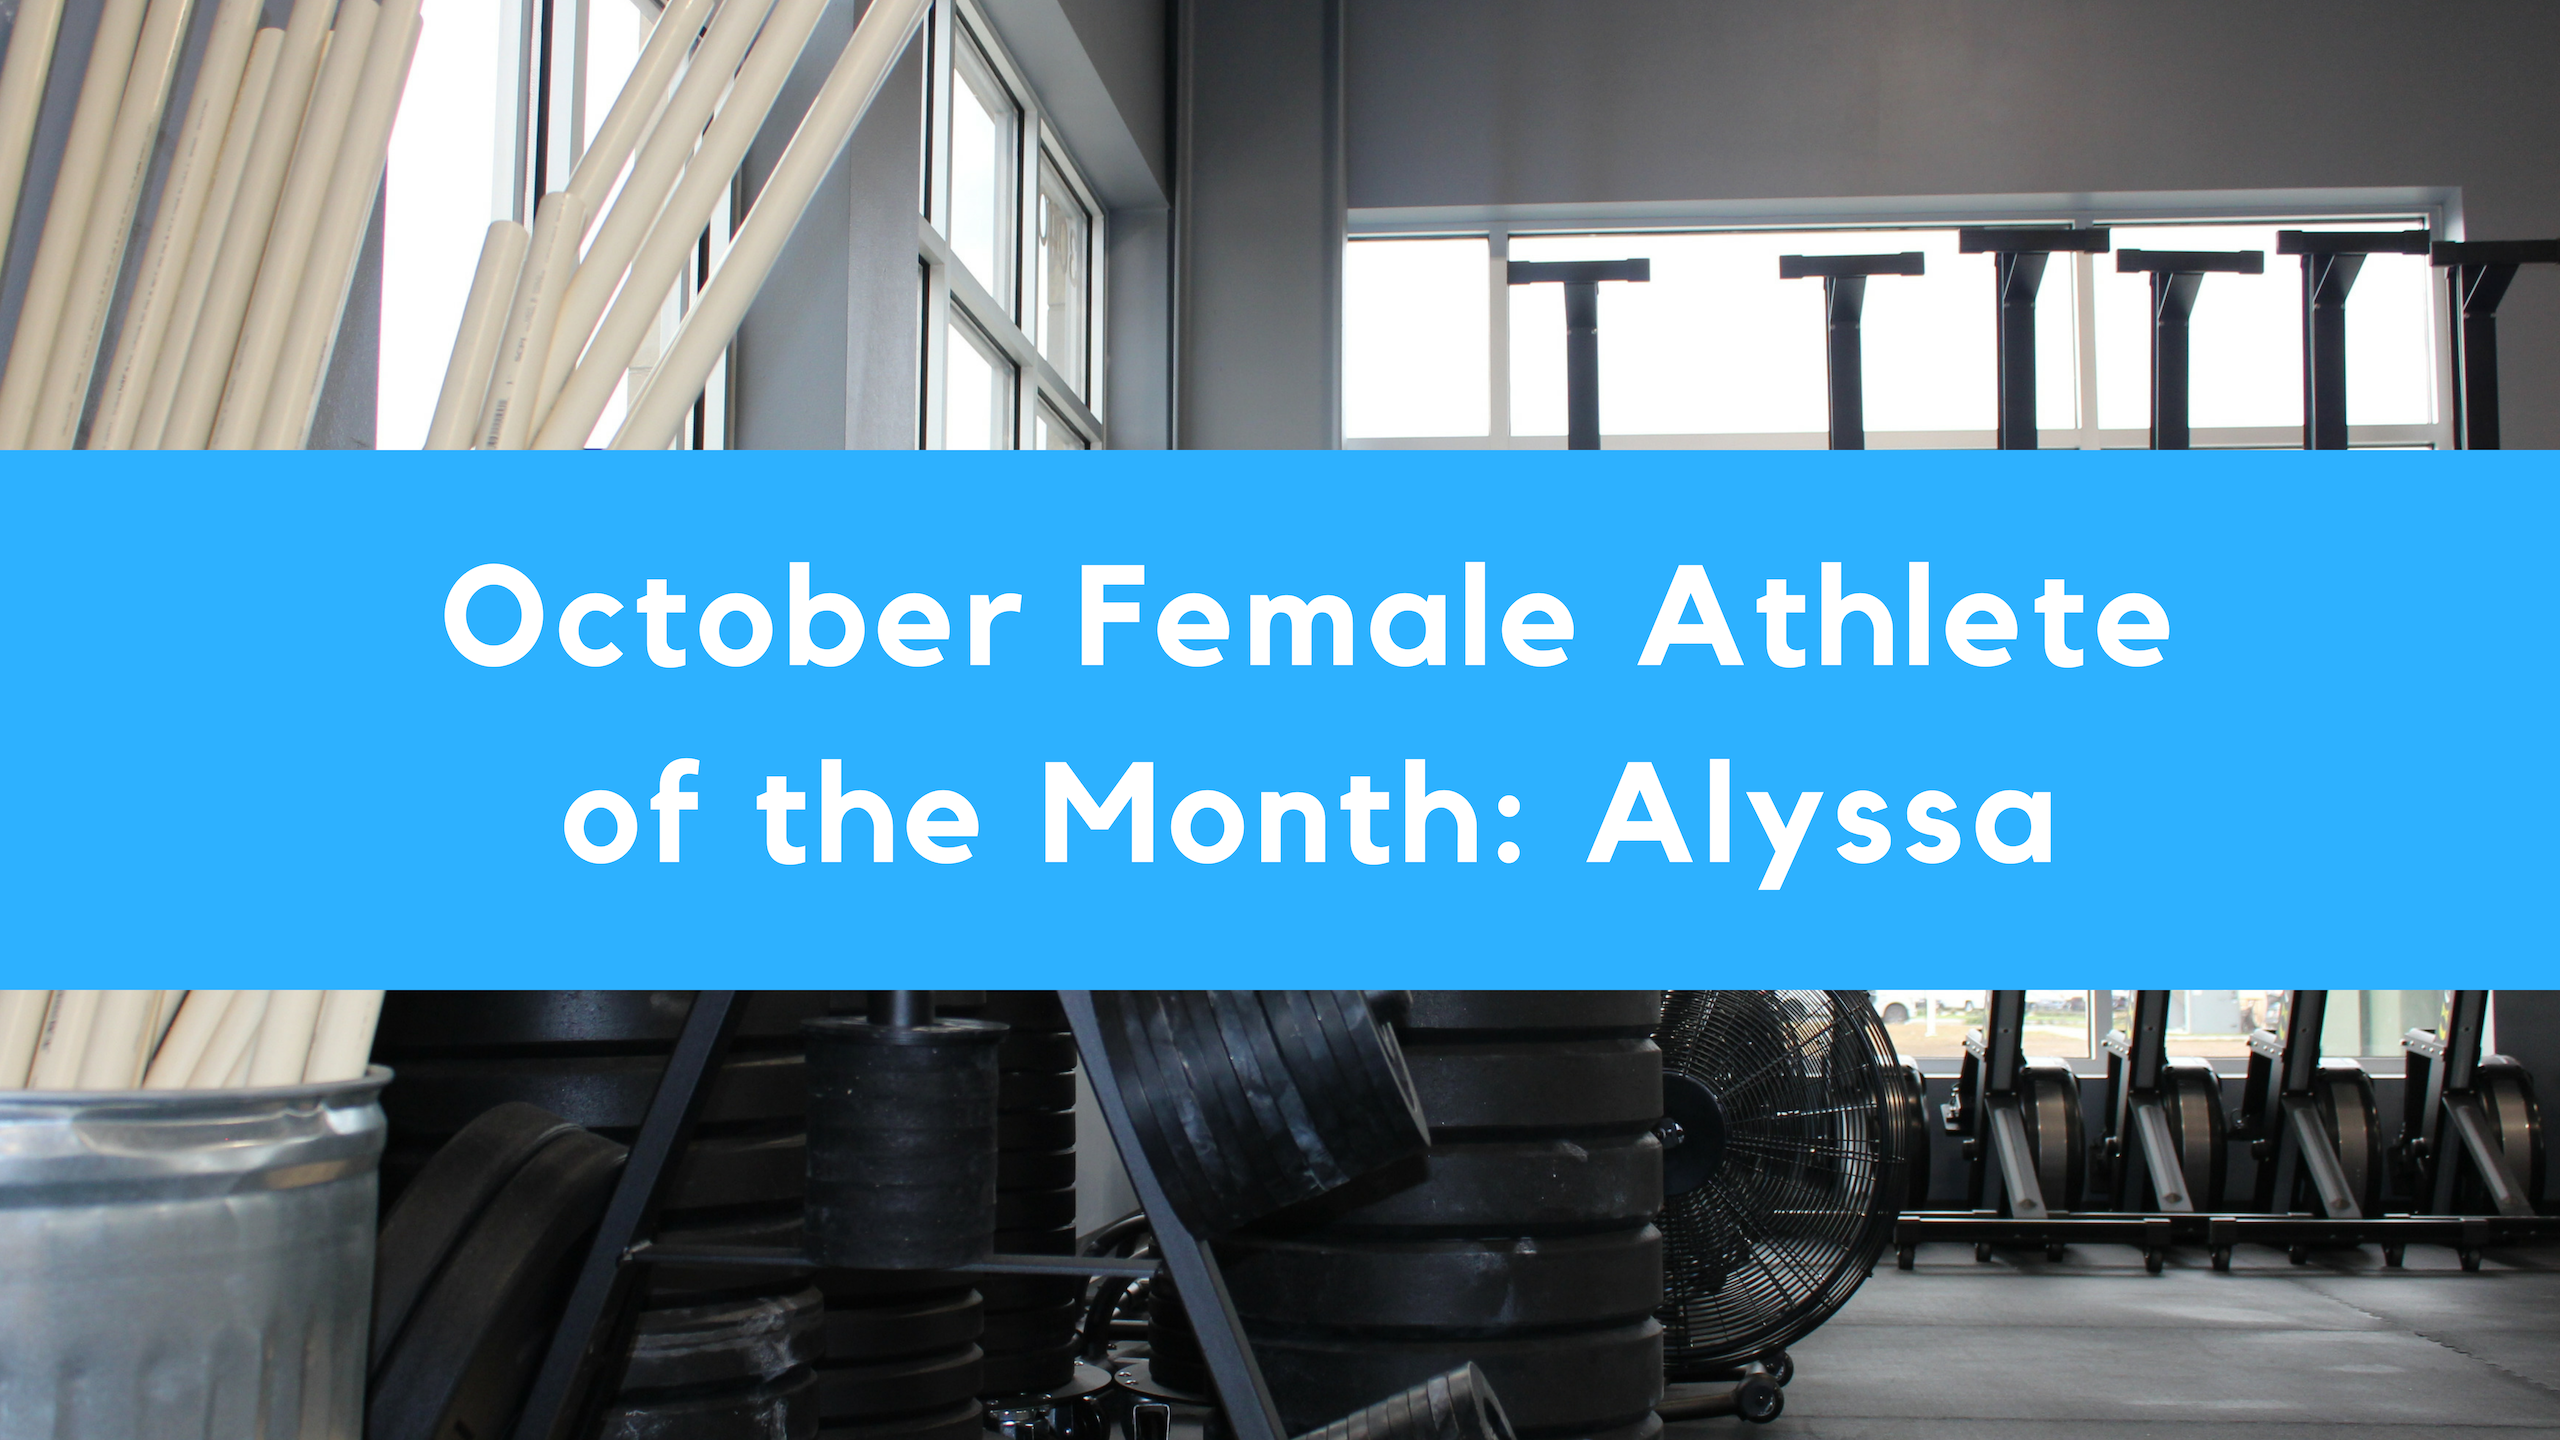 October Female Athlete of the Month: Alyssa